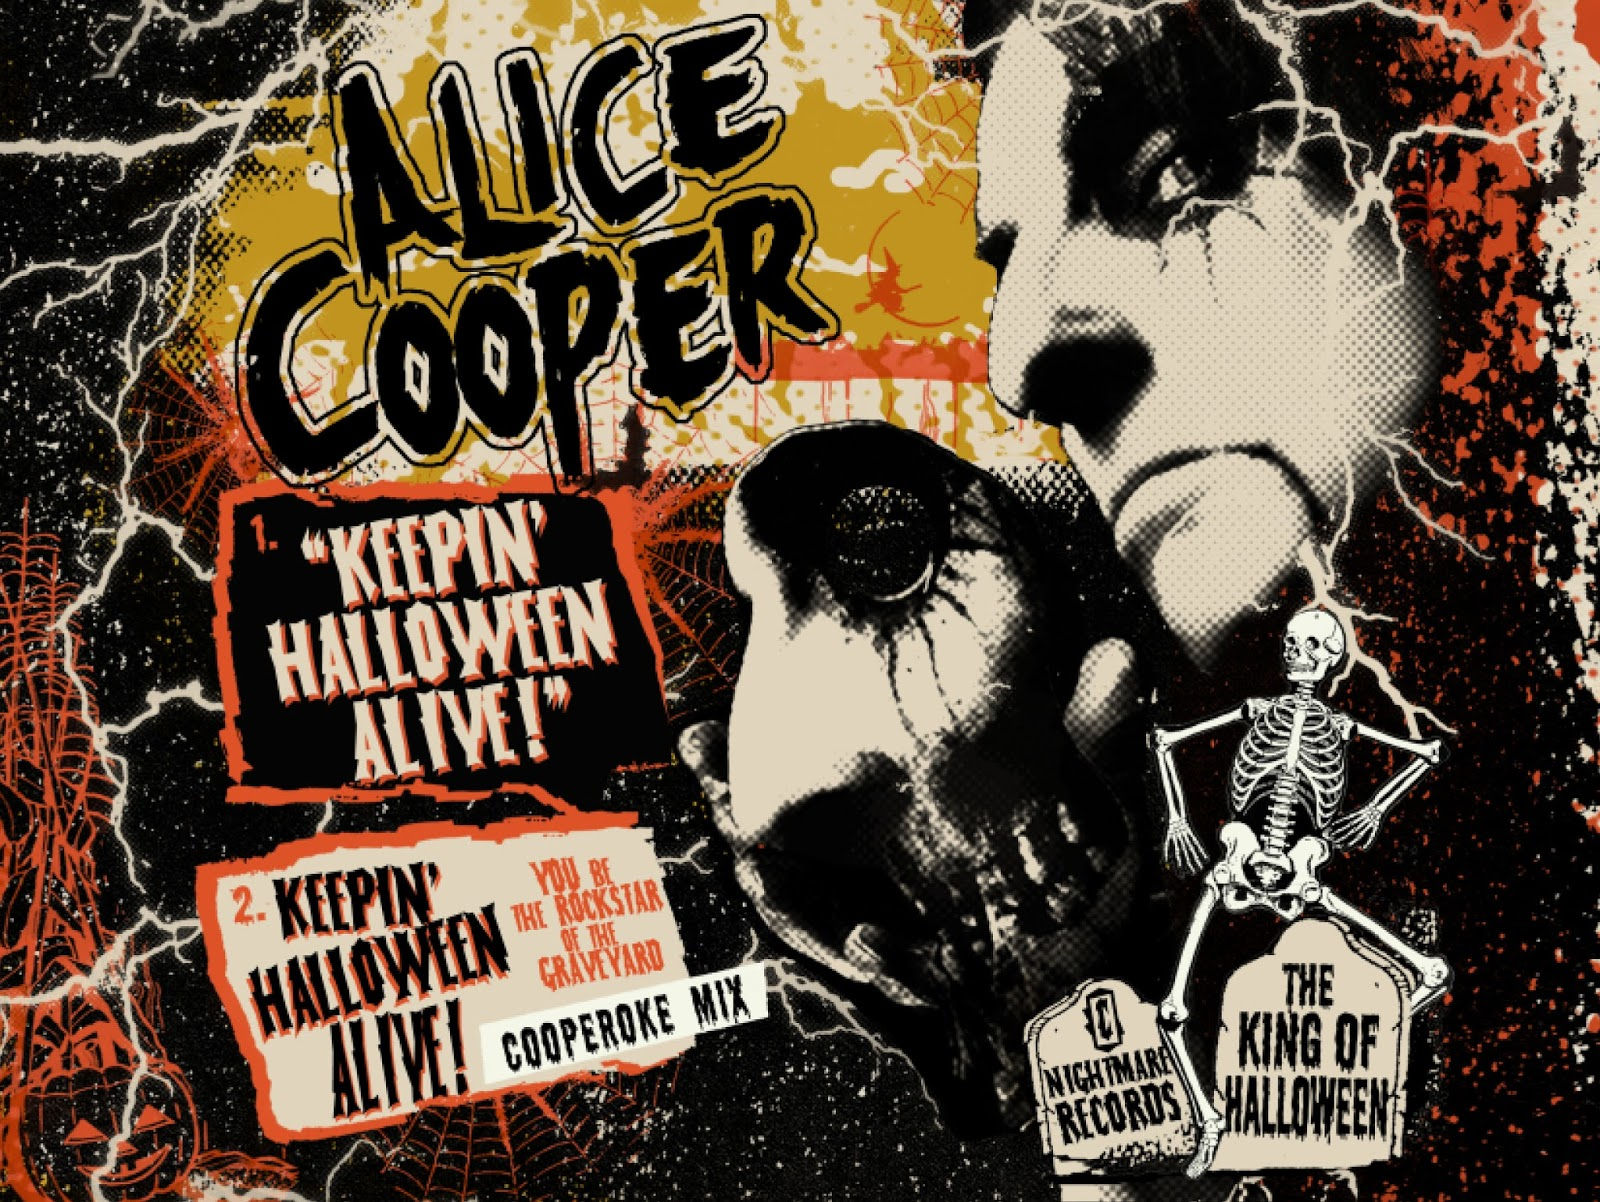 2009 alice cooper keepin halloween alive art and single